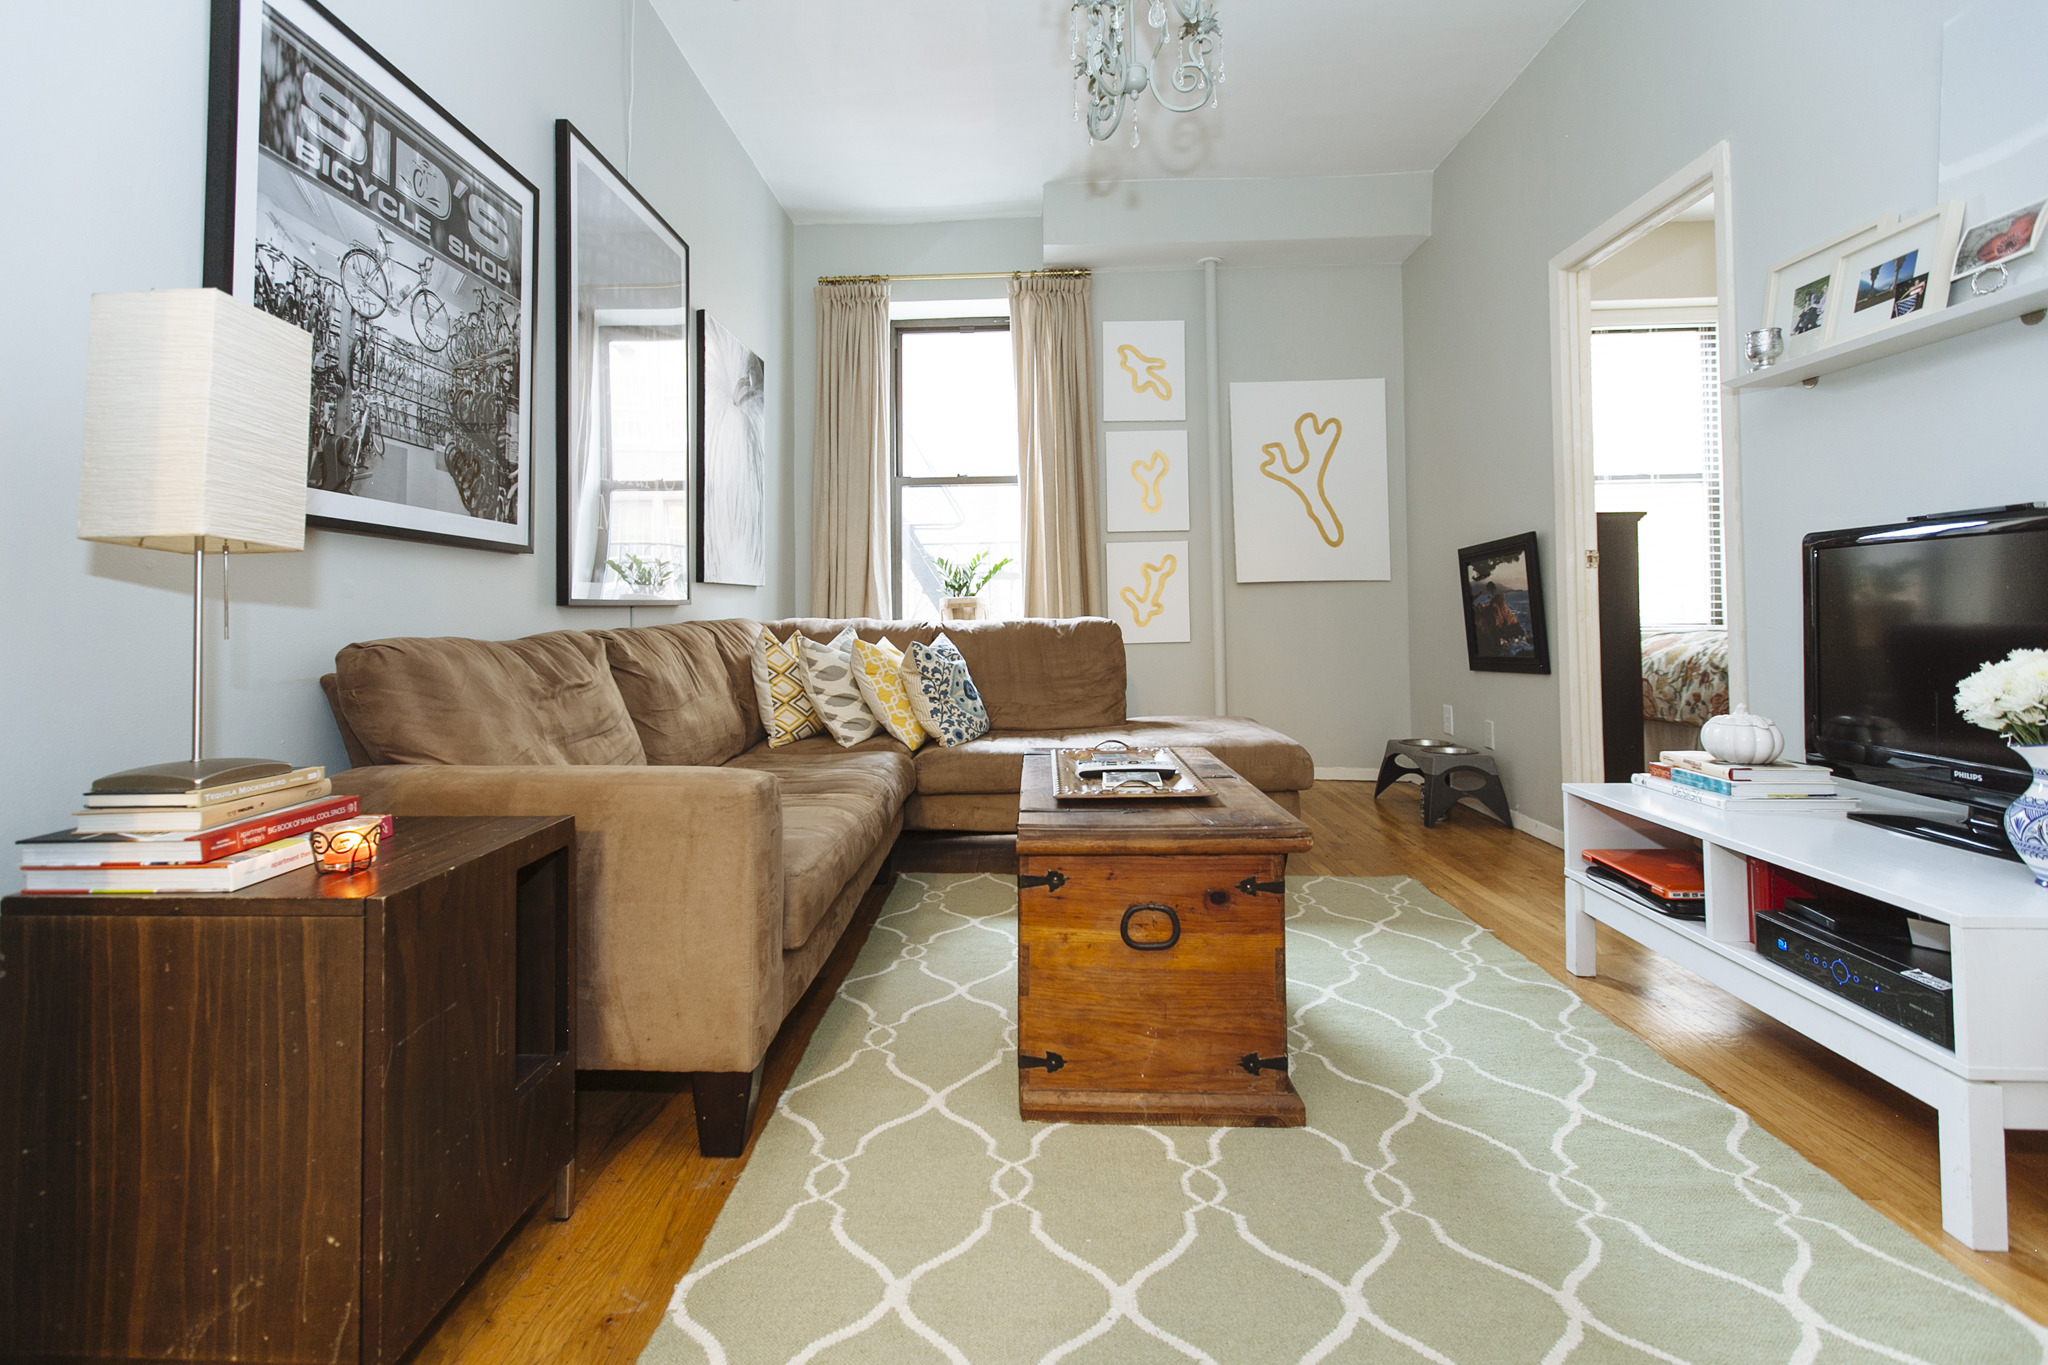 Nyc Apartment Interior Design Get Interior Design Ideas From These New York Apartments